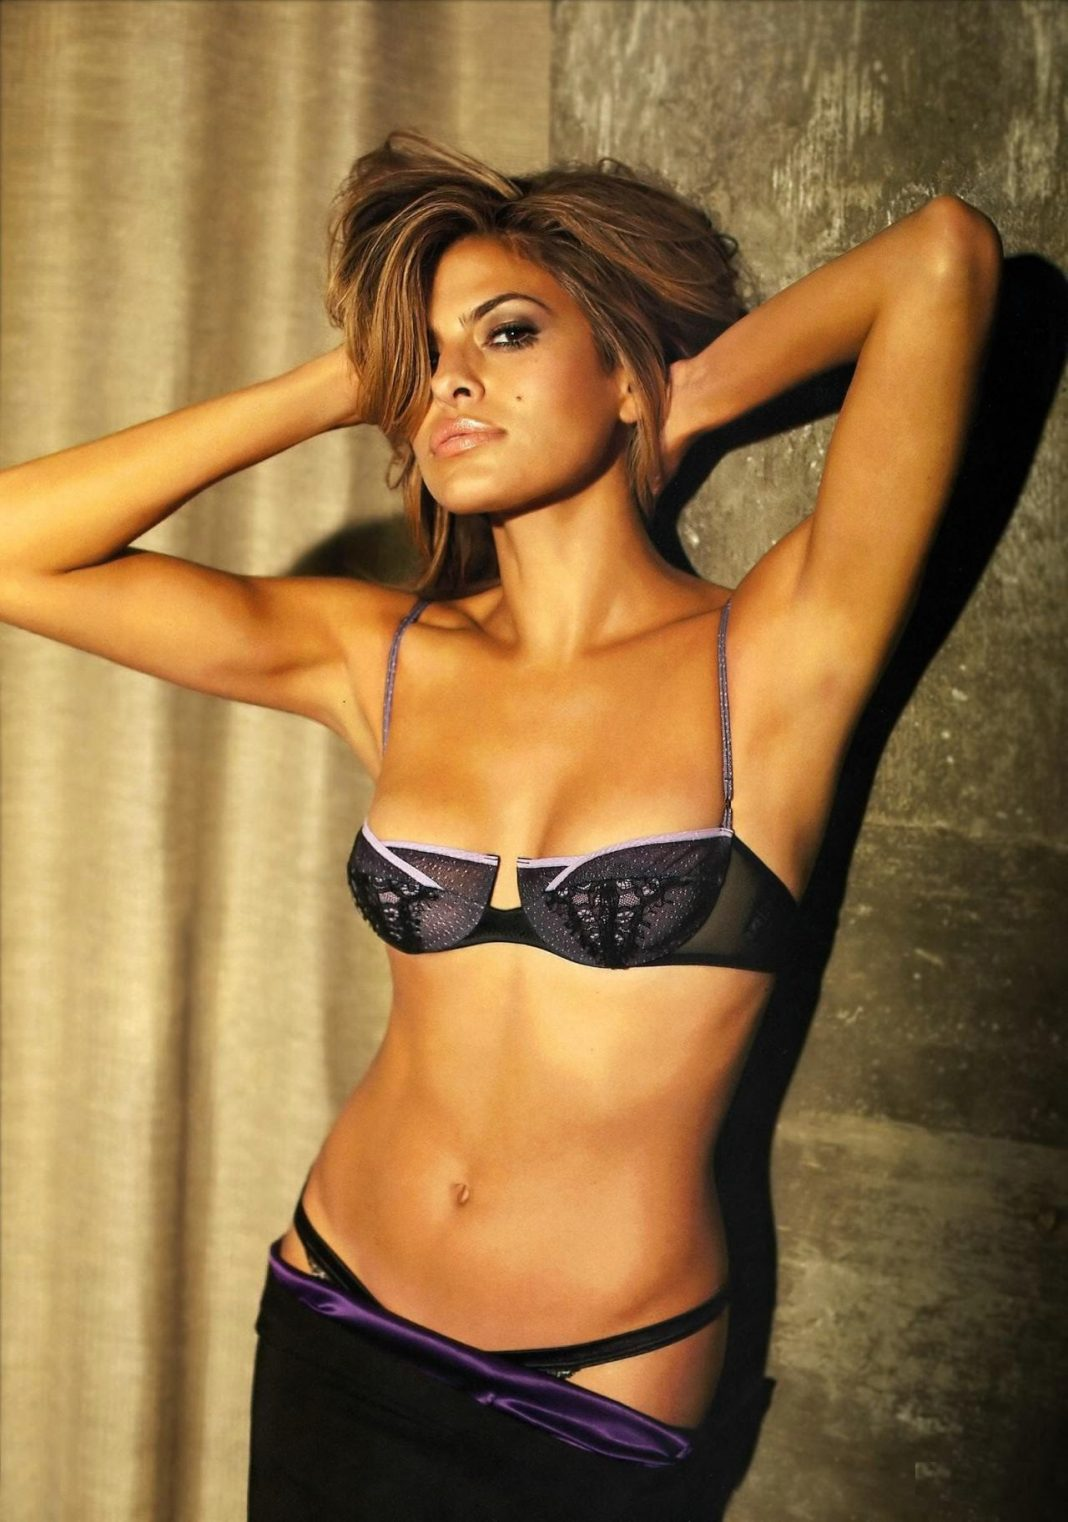 Eva mendes strips off for sexy new lingerie ads